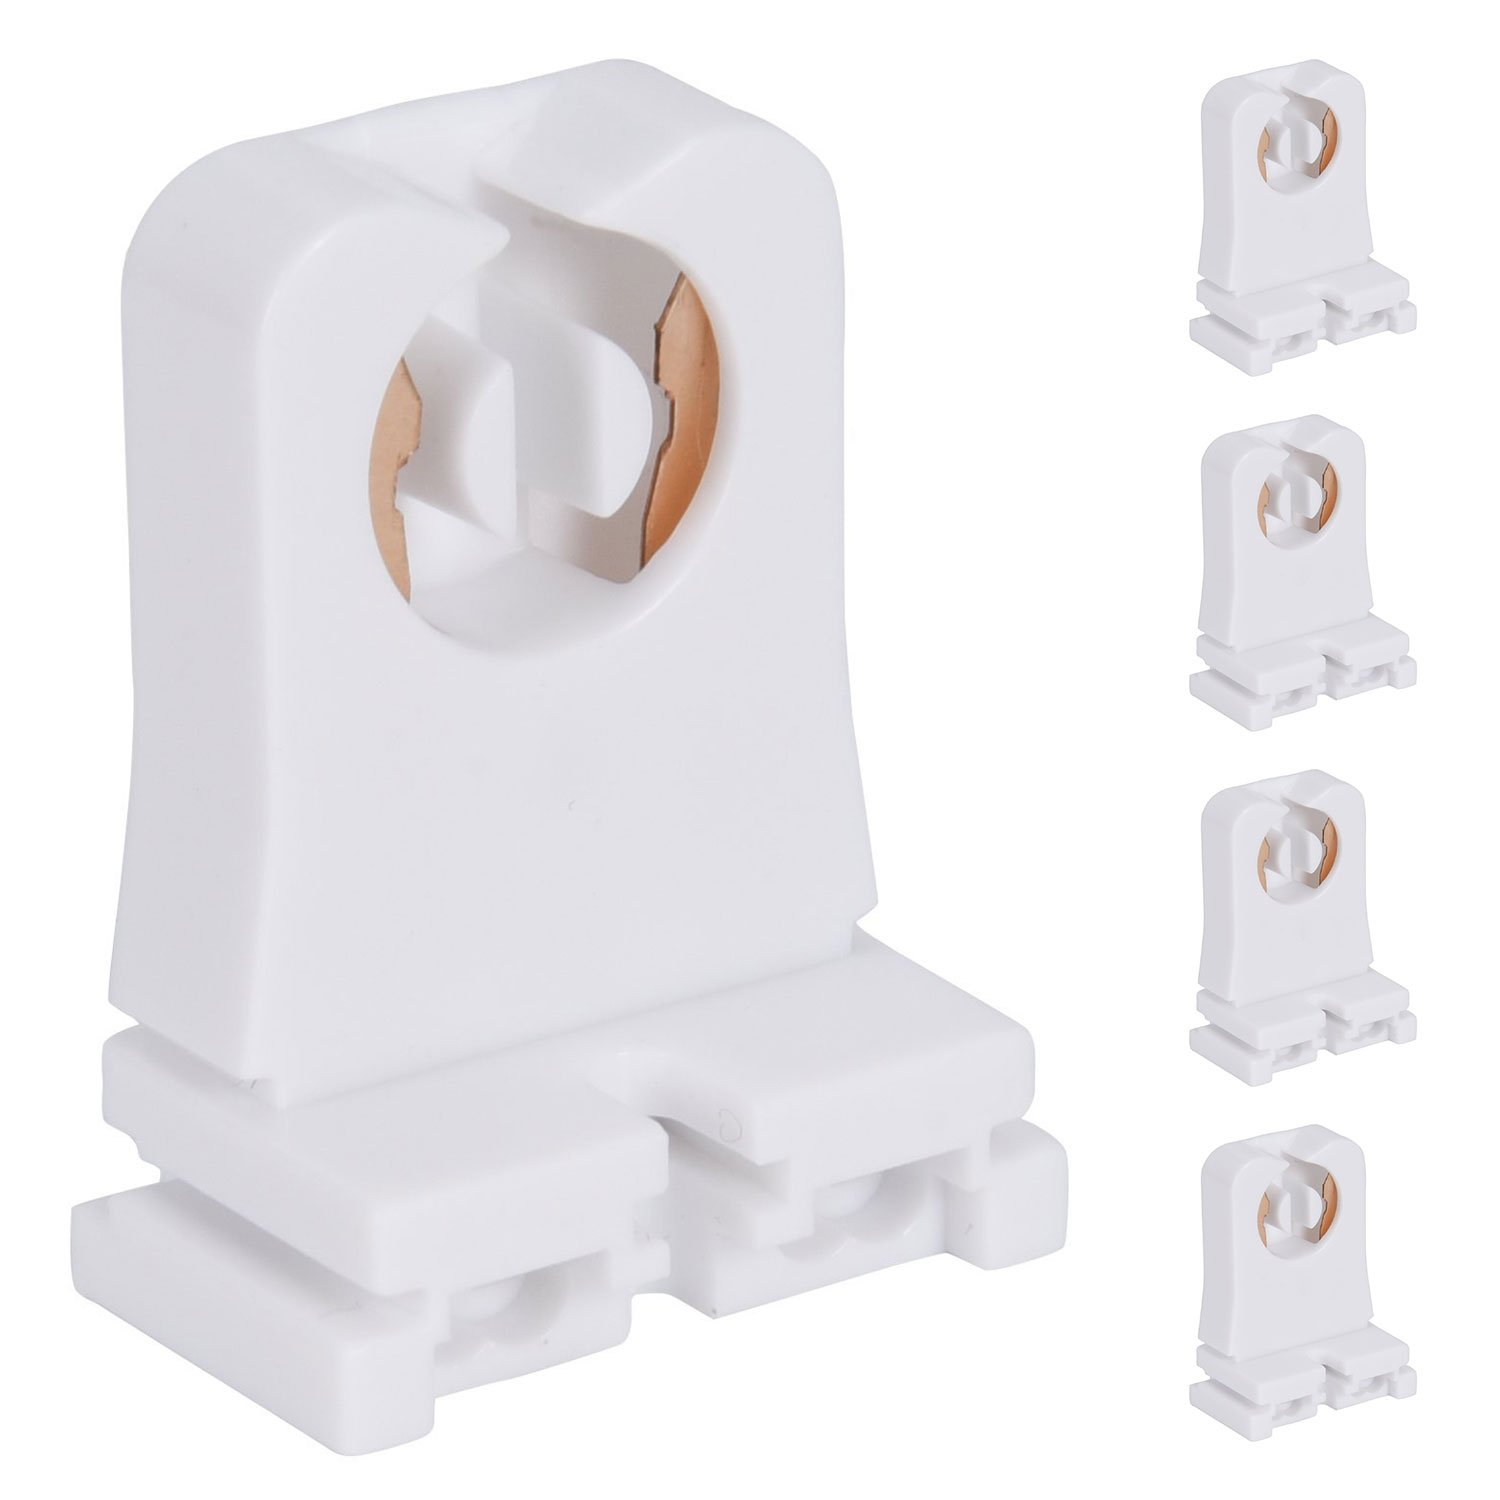 Non-shunted Turn Type T8 Lamp Holder JACKYLED 20-Pack UL Socket Tombstone for LED Fluorescent Tube Replacements Medium Bi-pin Socket for Programmed Start Ballasts